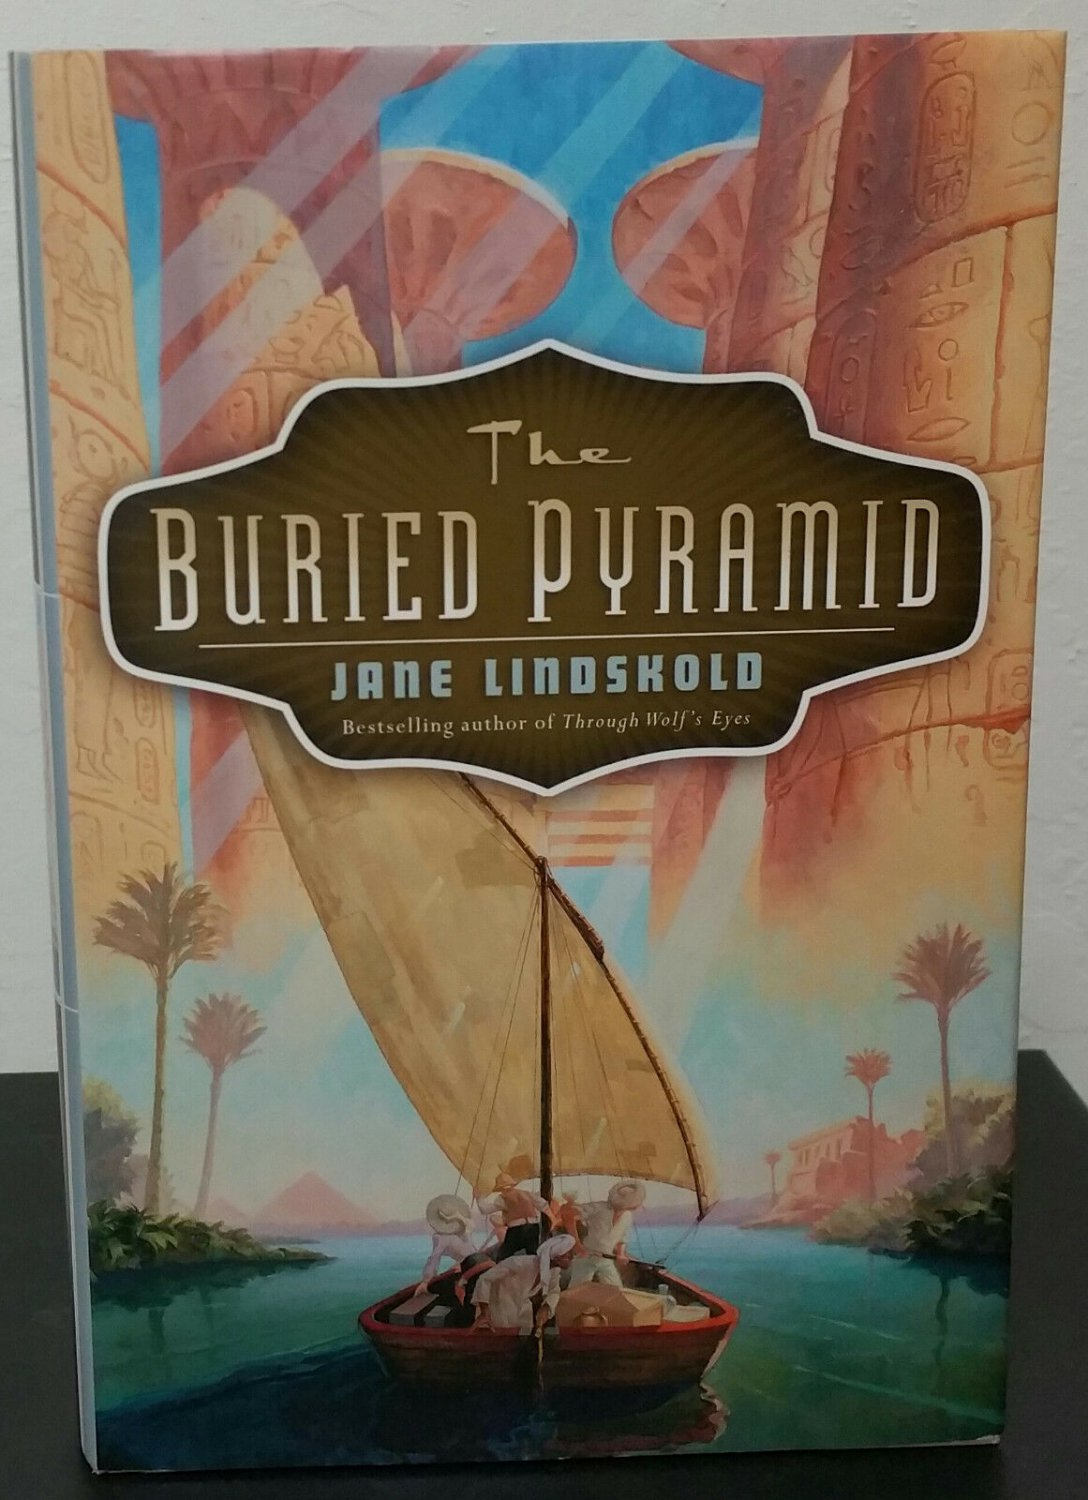 The Buried Pyramid by Jane Lindskold - Signed 1st Hb. Edn.